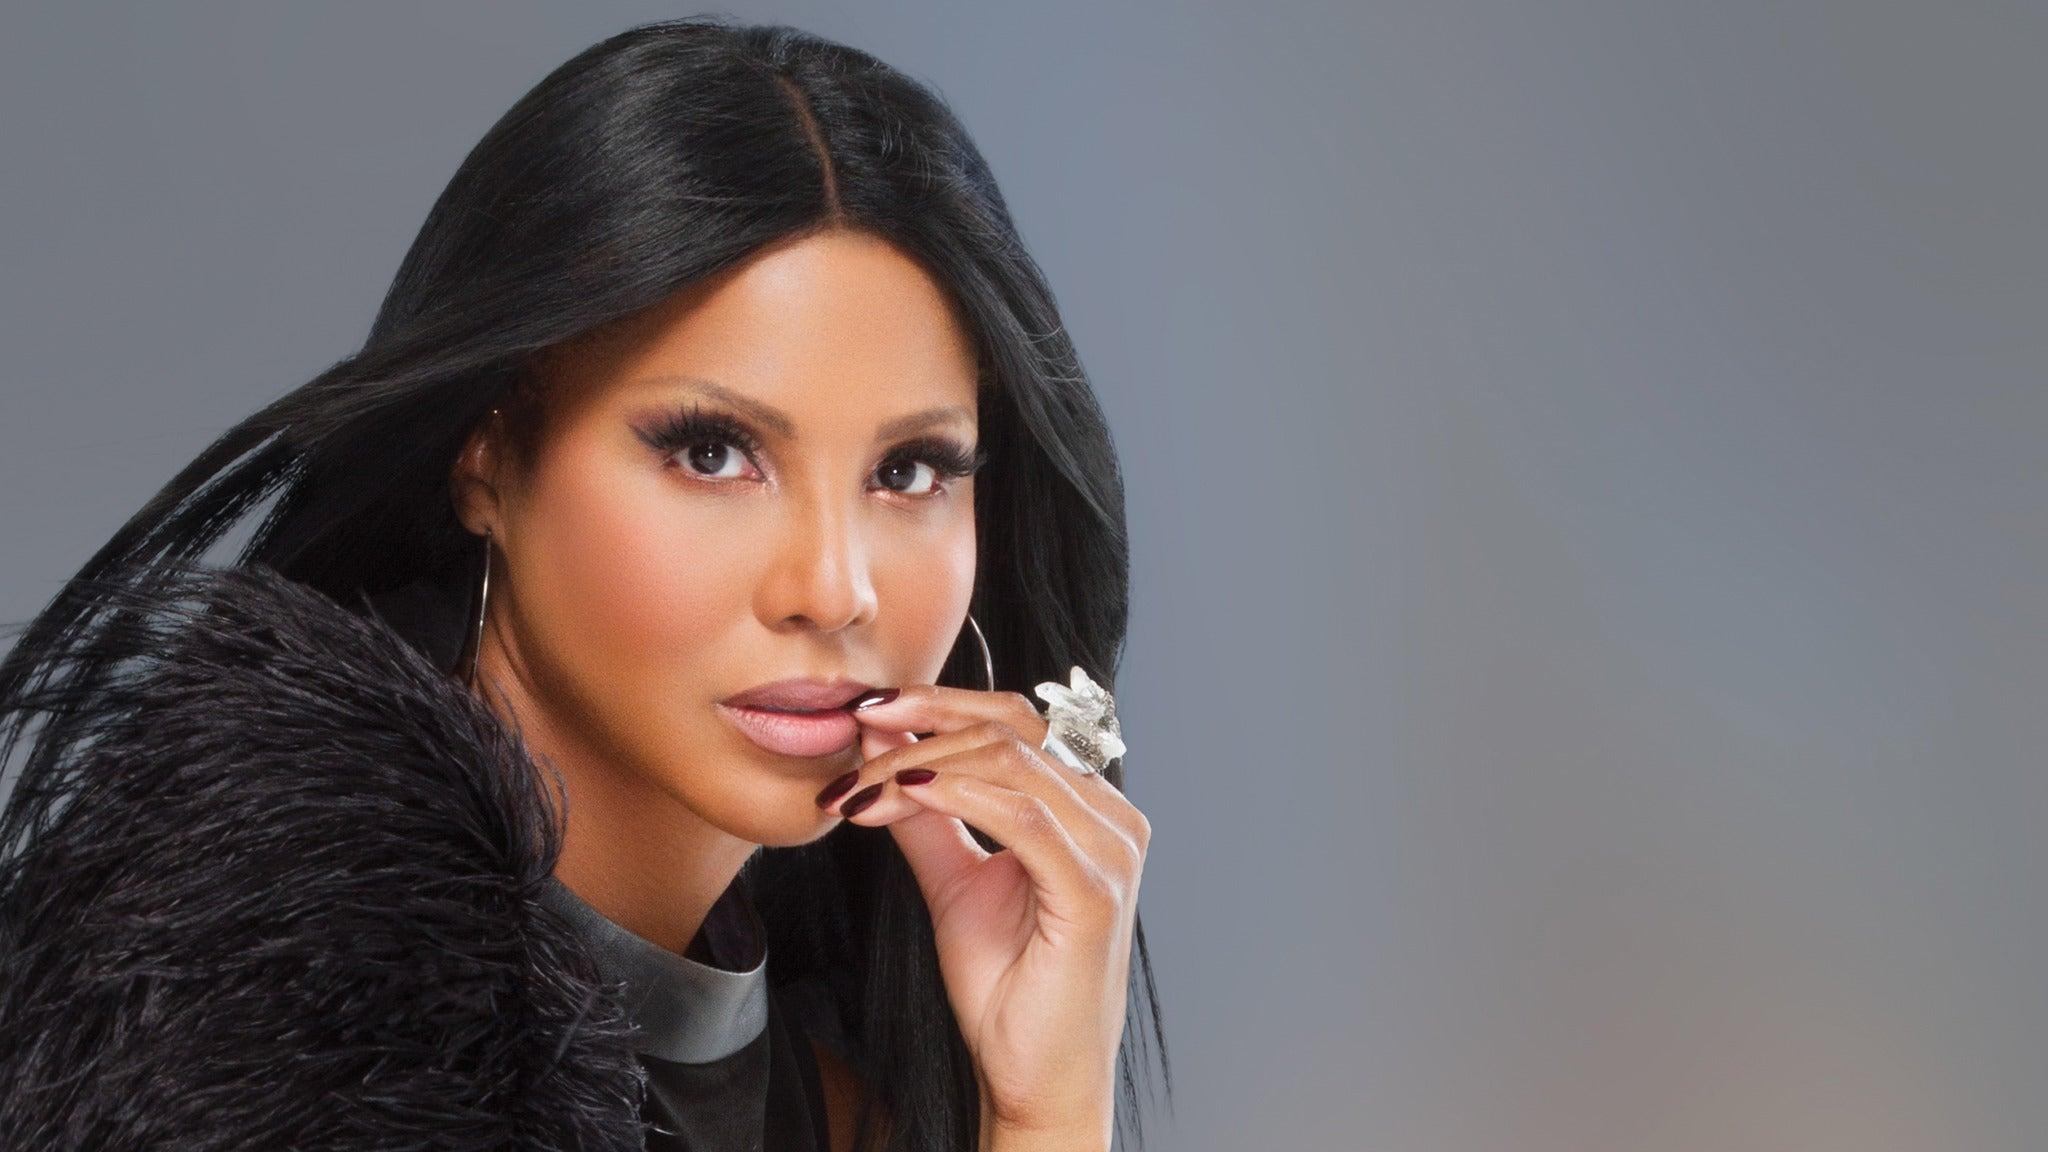 Toni Braxton at Hard Rock Live - Hollywood, FL 33314